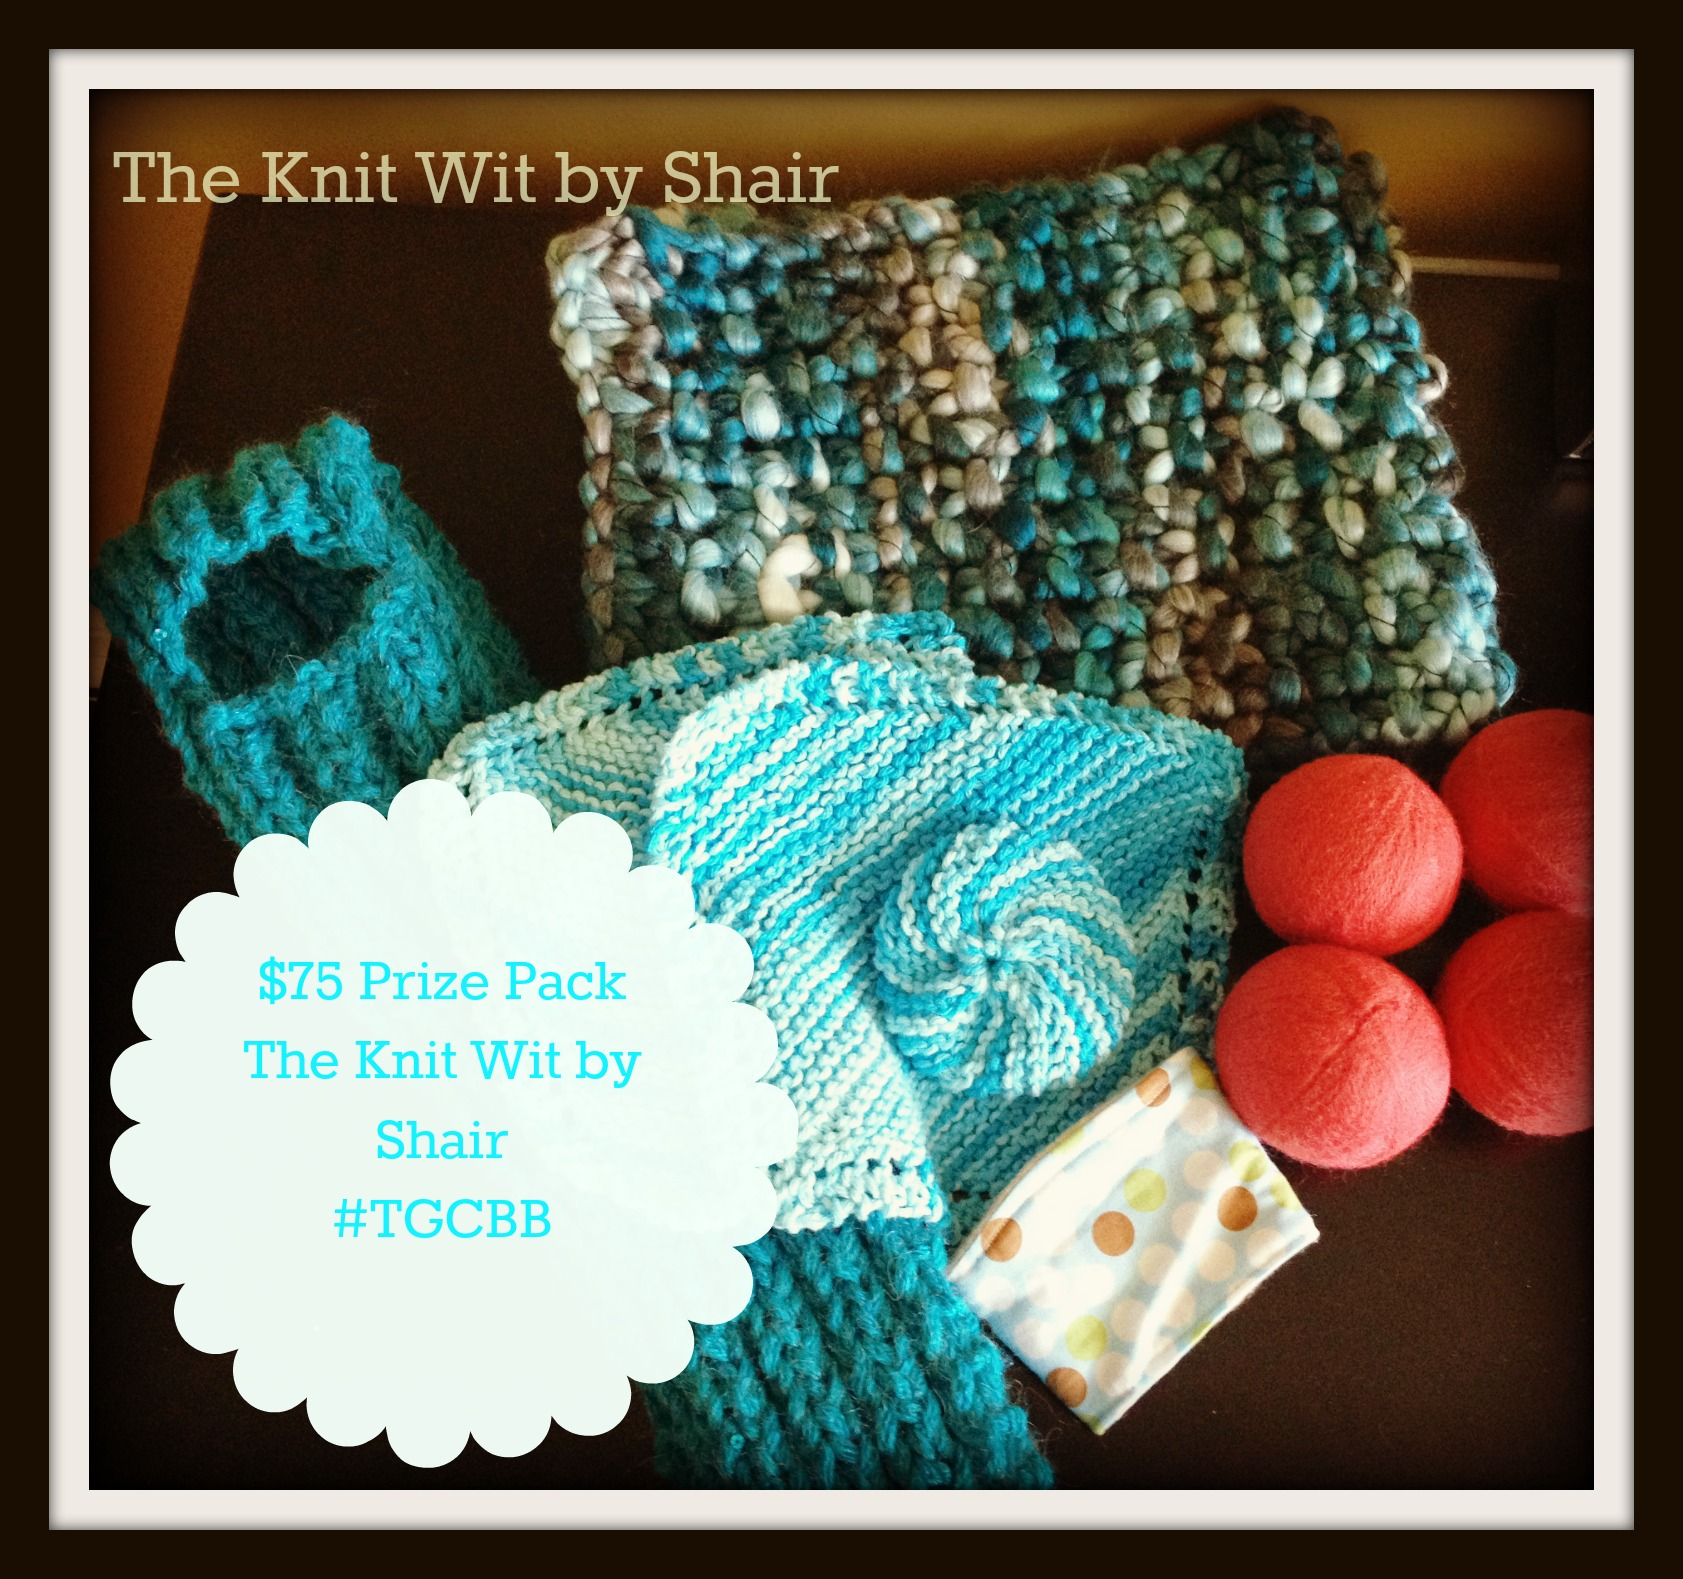 $75 Prize Package for The Knit Wit by Shair